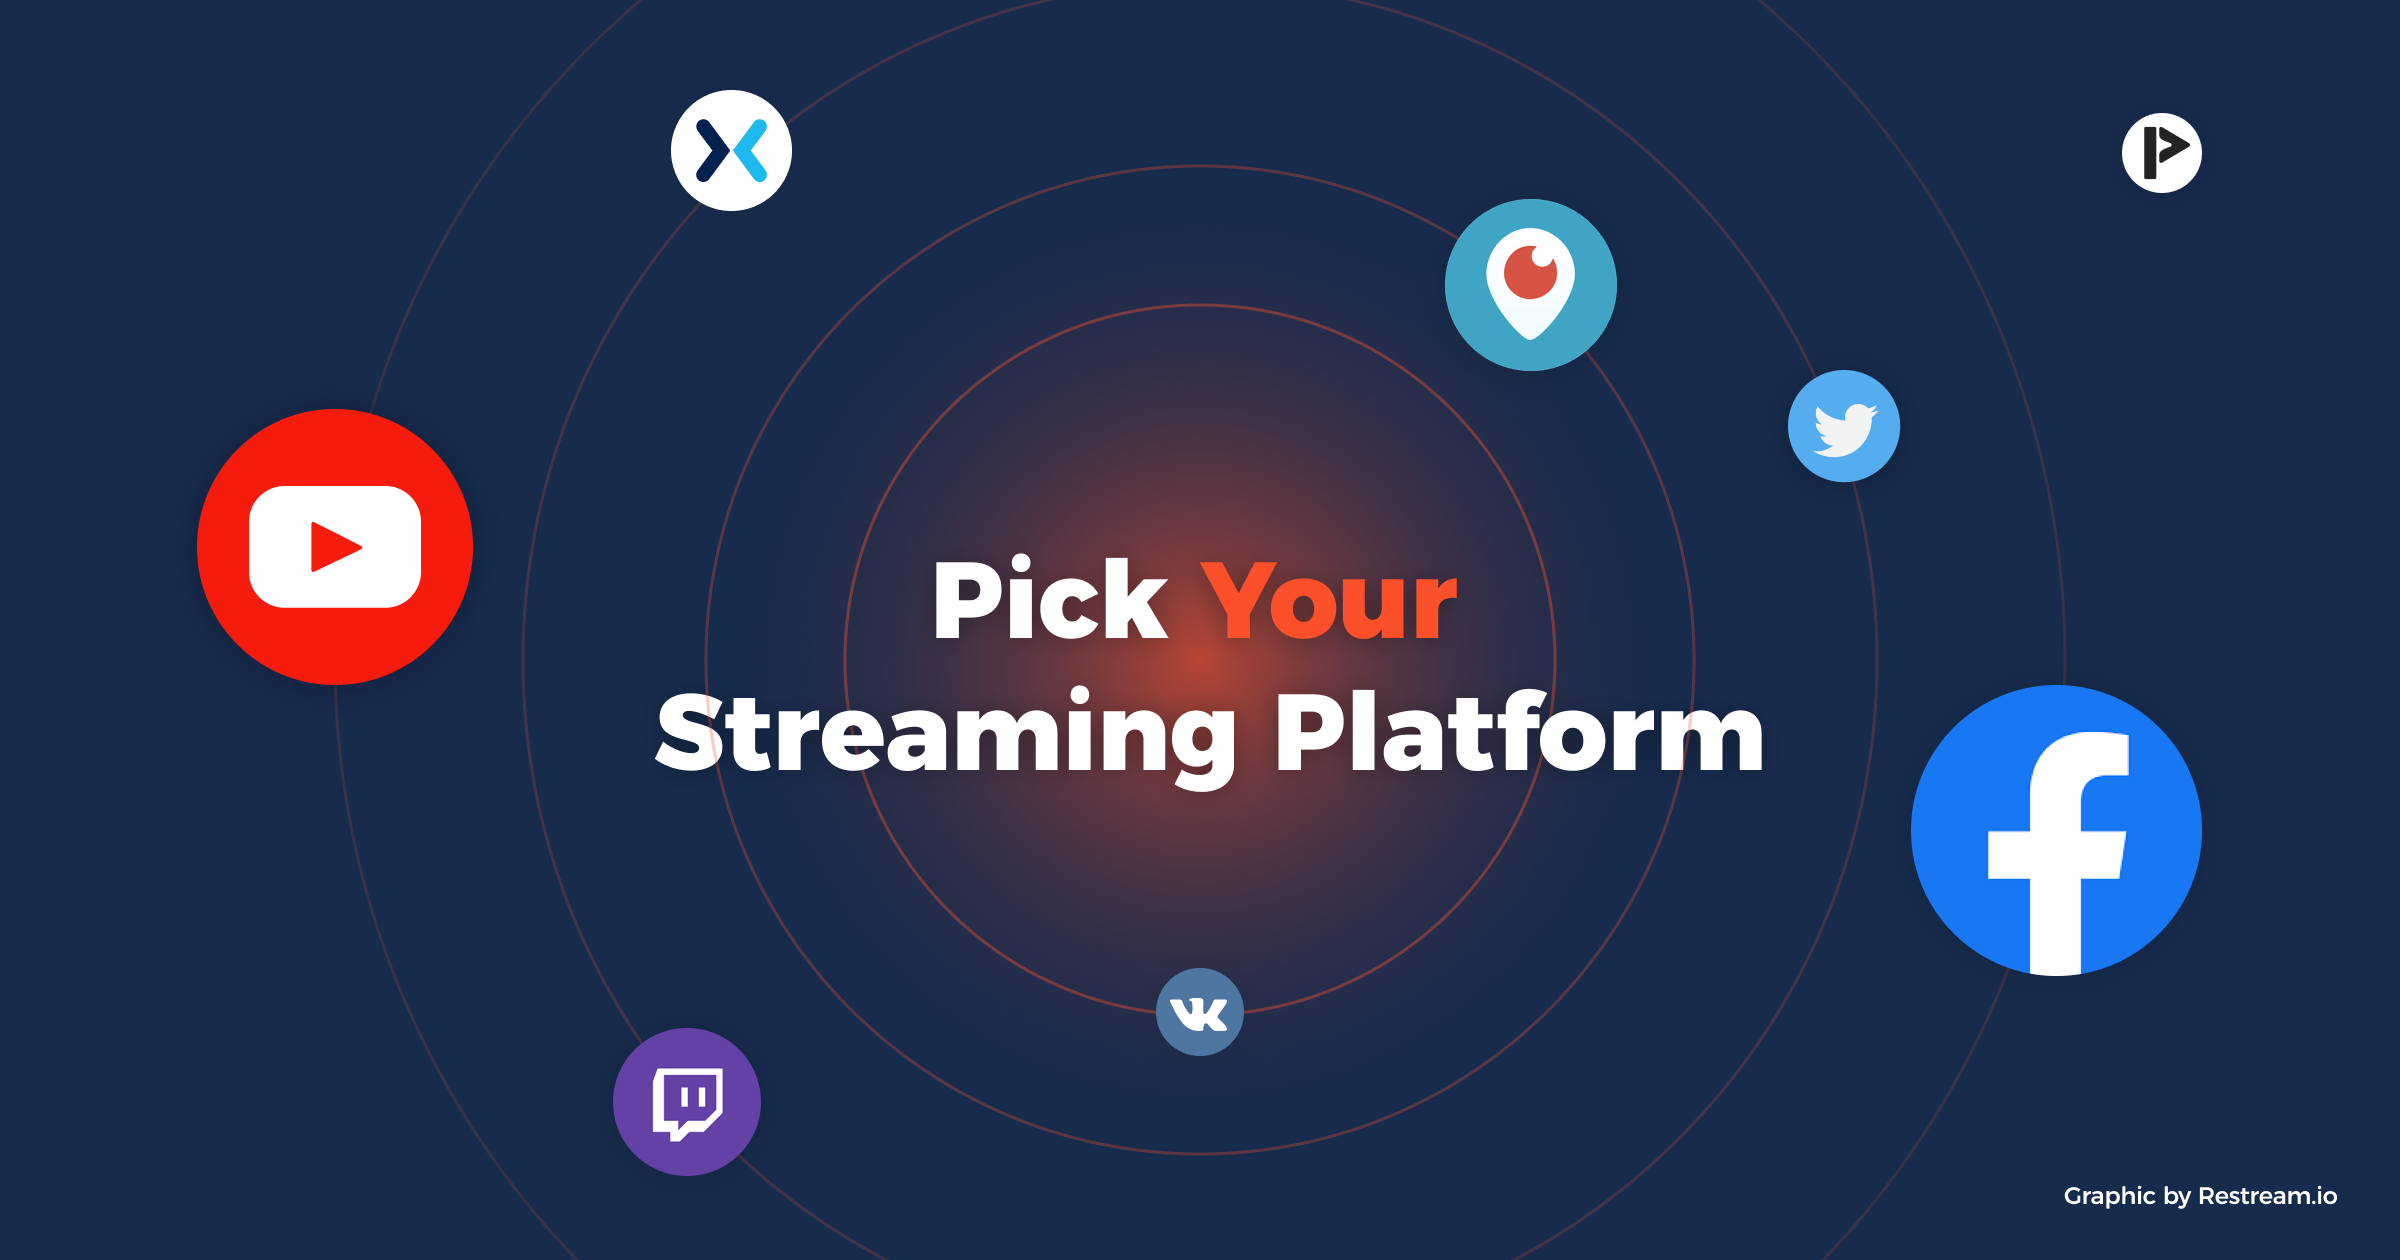 How to live stream an event: pick your streaming platform